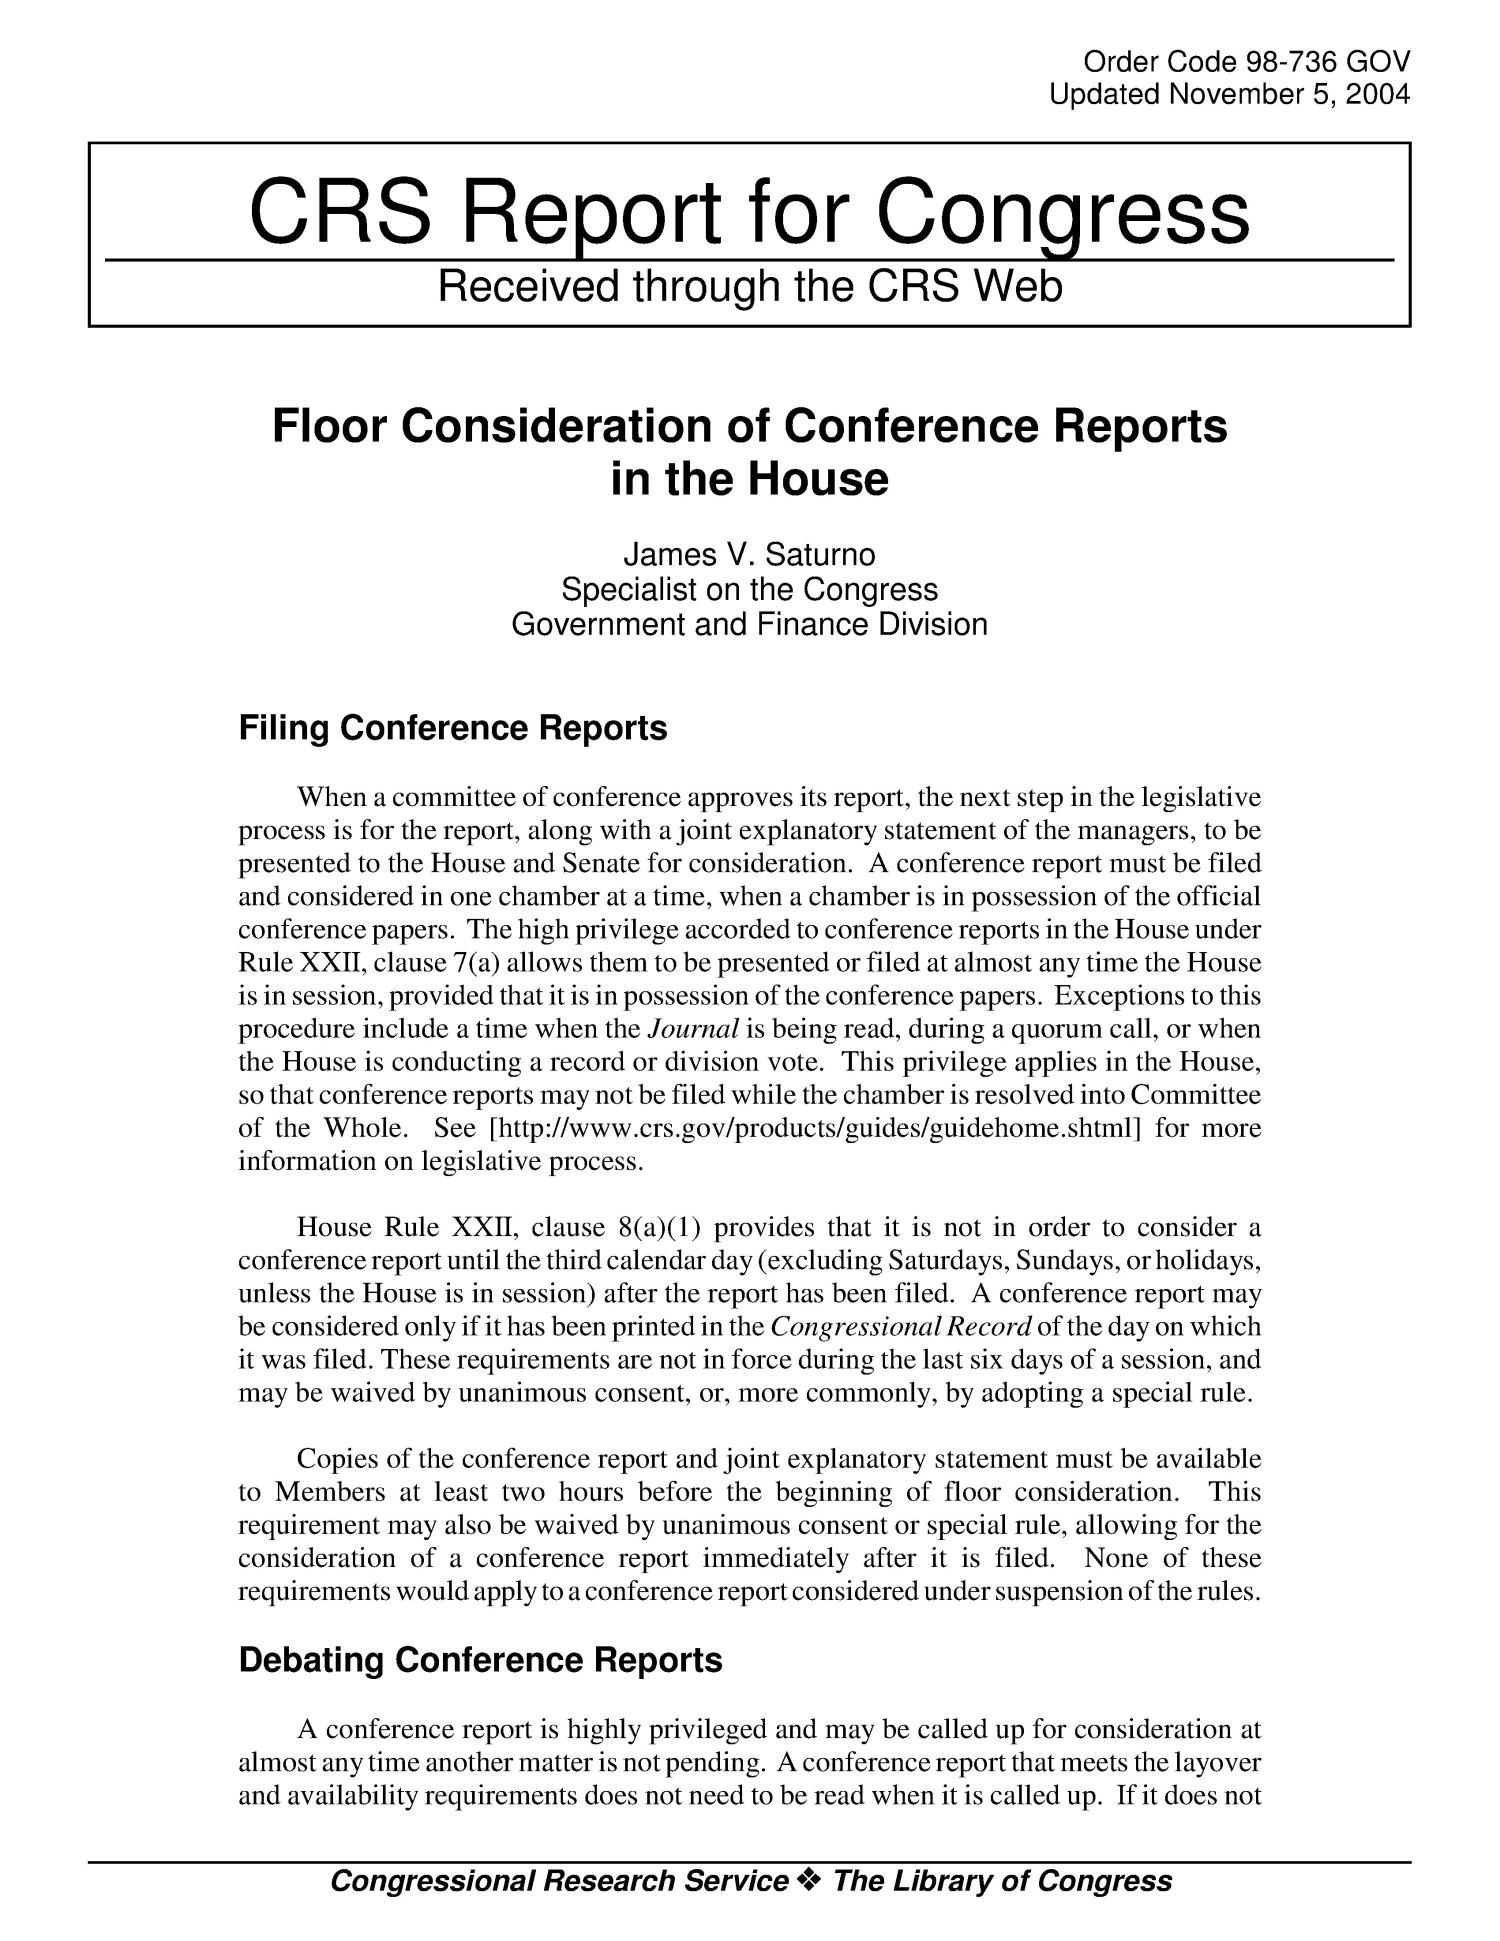 Floor Consideration Of Conference Reports In The House Unt